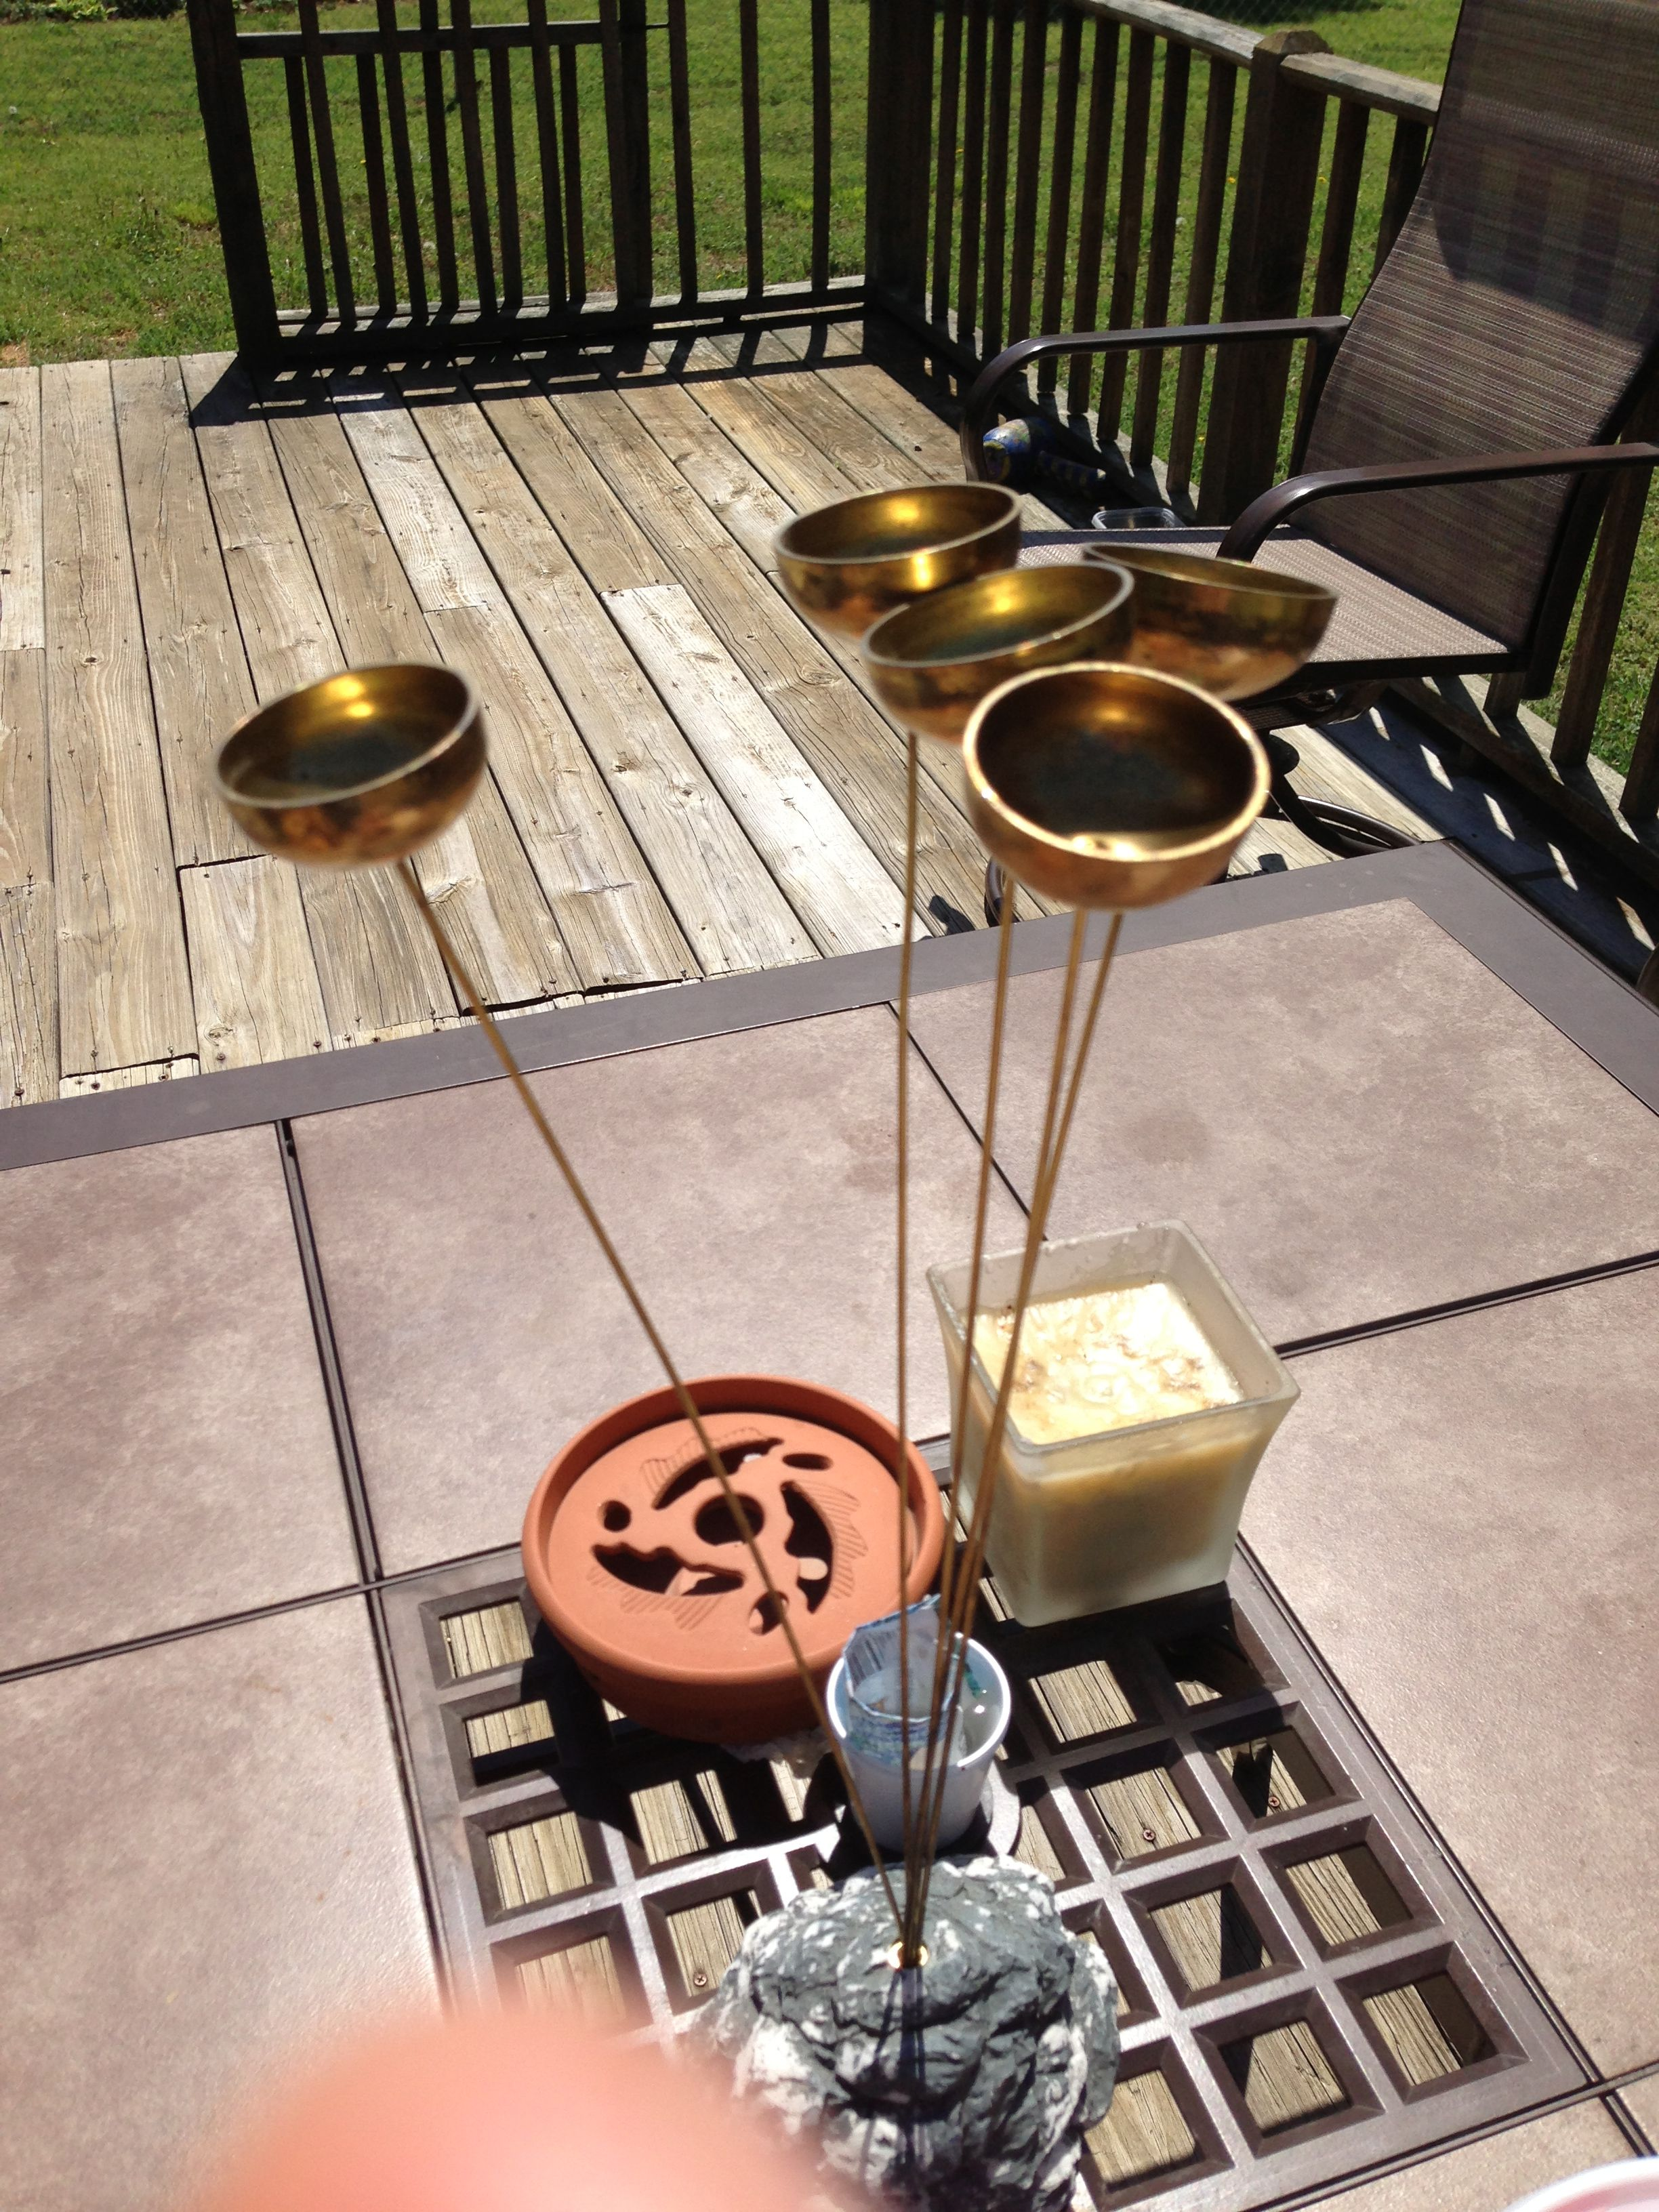 Cool wind chime for a table!!